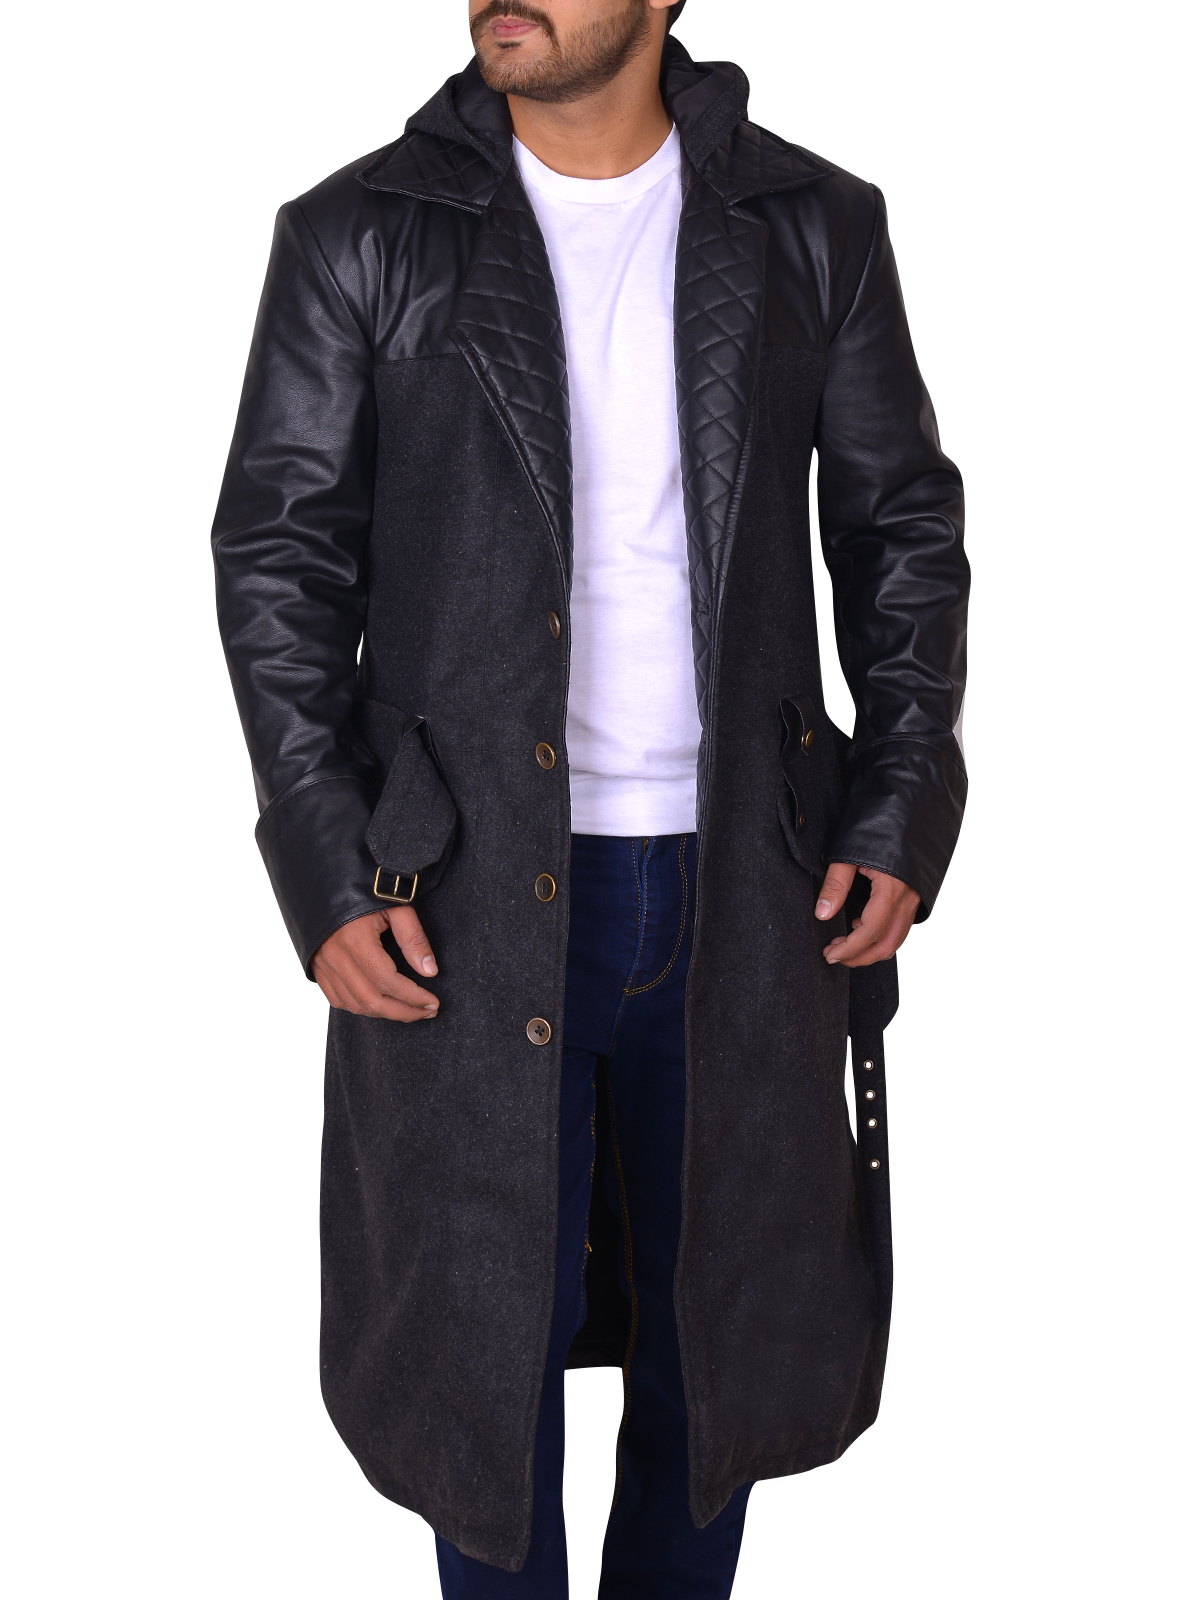 Assassin S Creed Syndicate Jacob Frye Coat Film Star Look